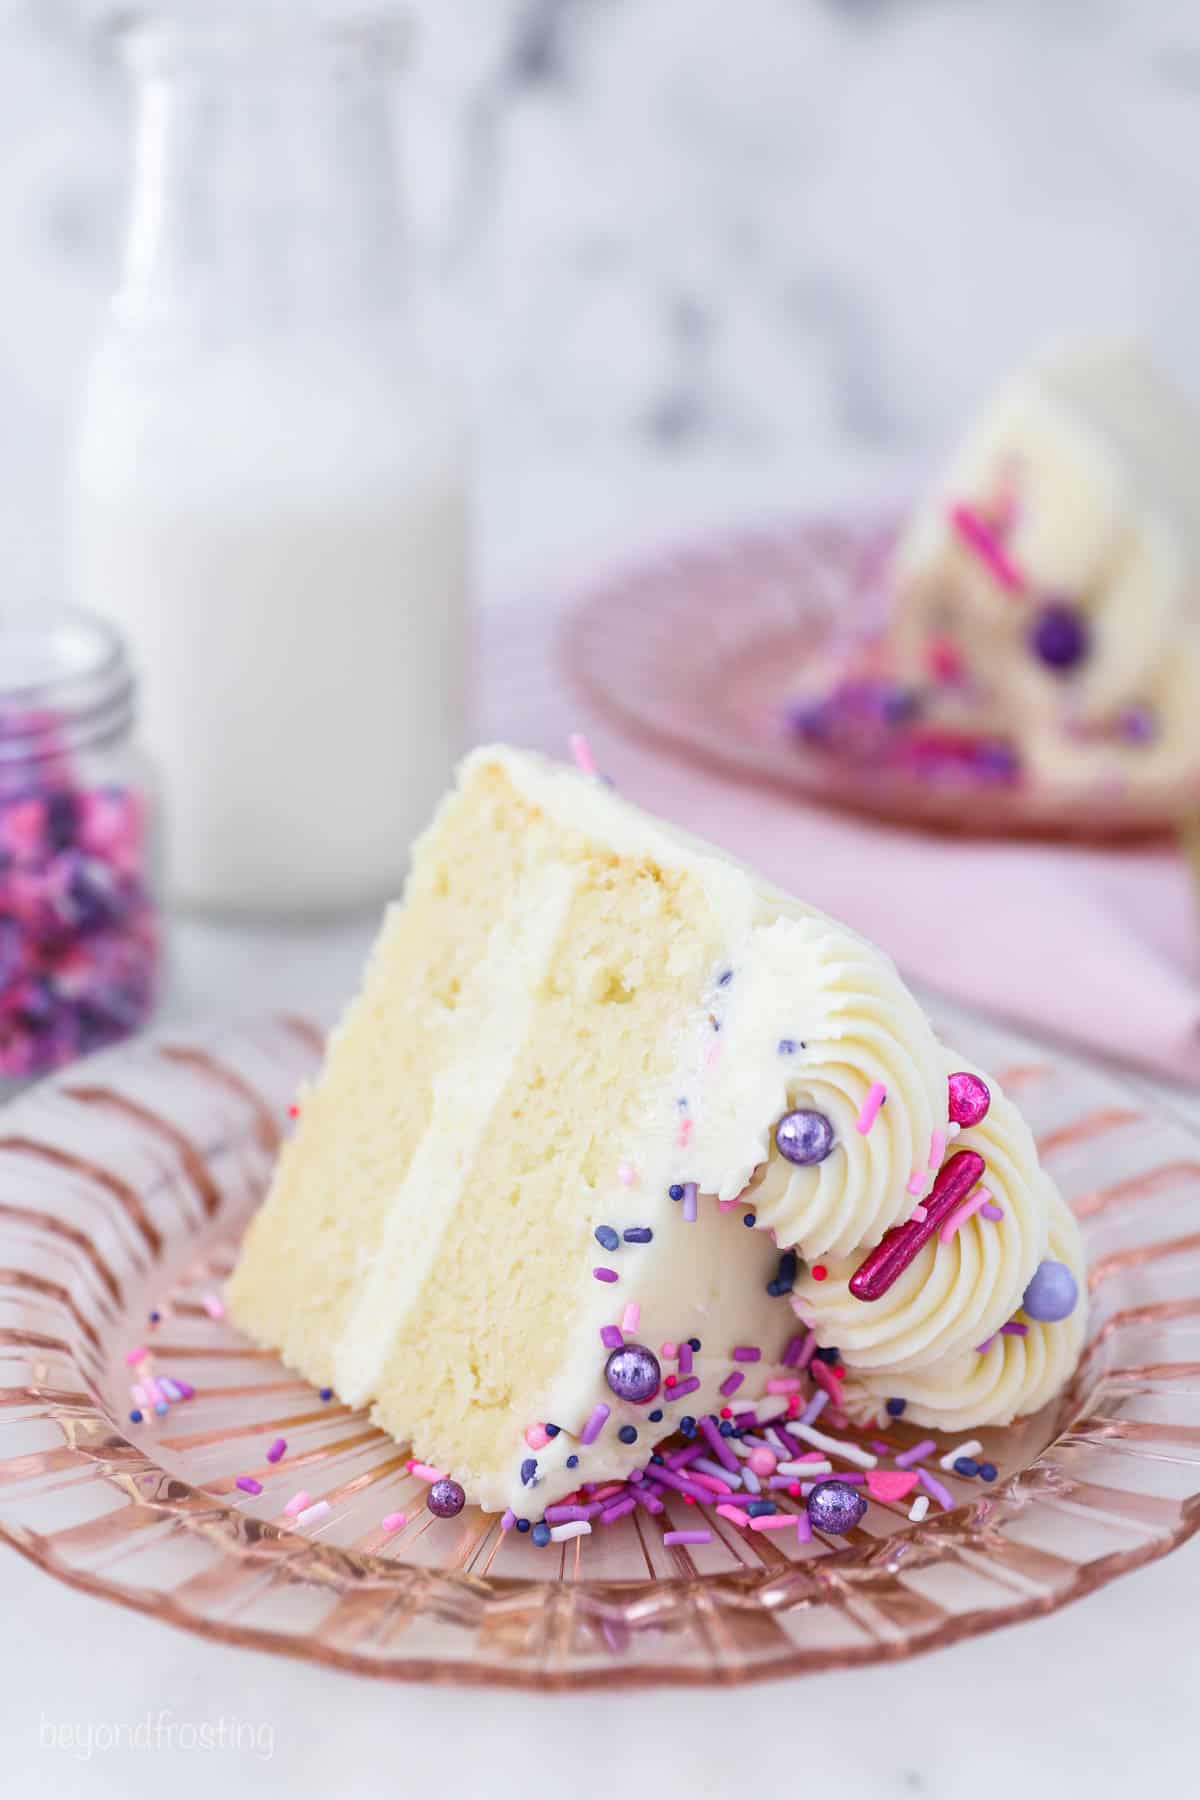 a small slice of vanilla cake with pink and purple sprinkles on a pink glass plate